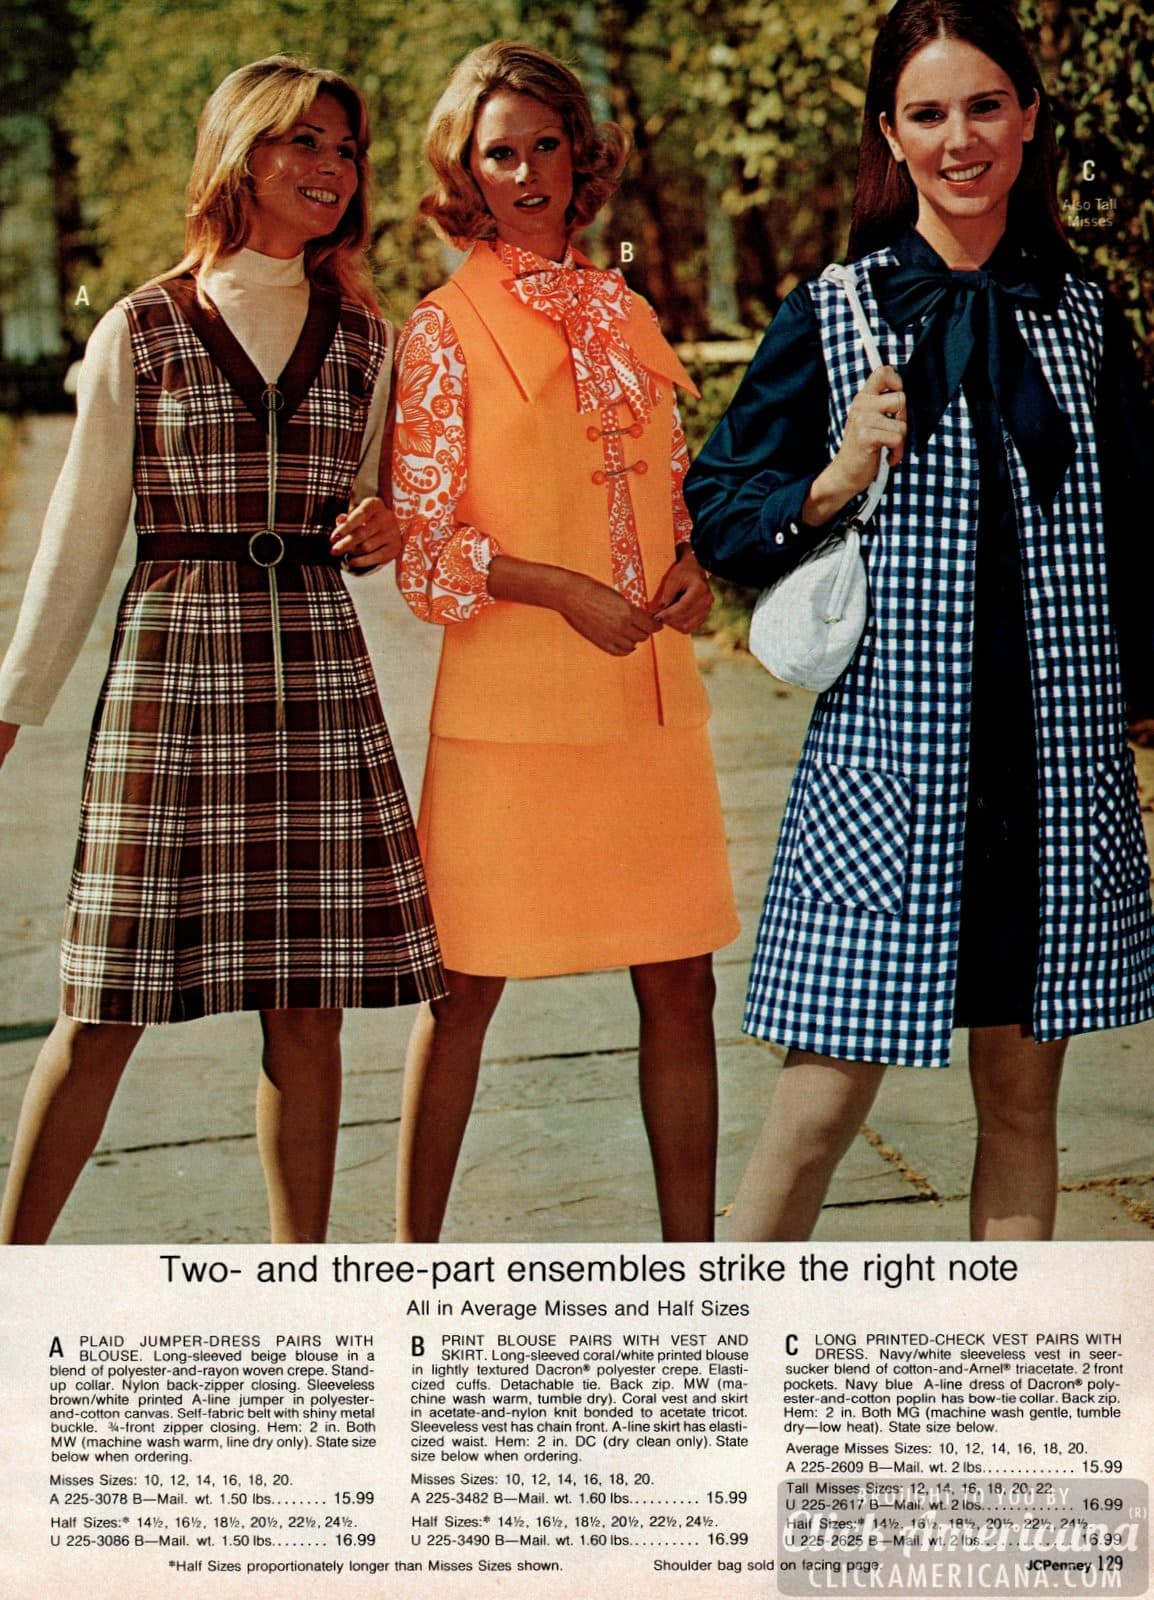 2 and 3-piece ensembles - plaid jumper dress with blouse, print blouse with vest and skirt, and check vest with dress